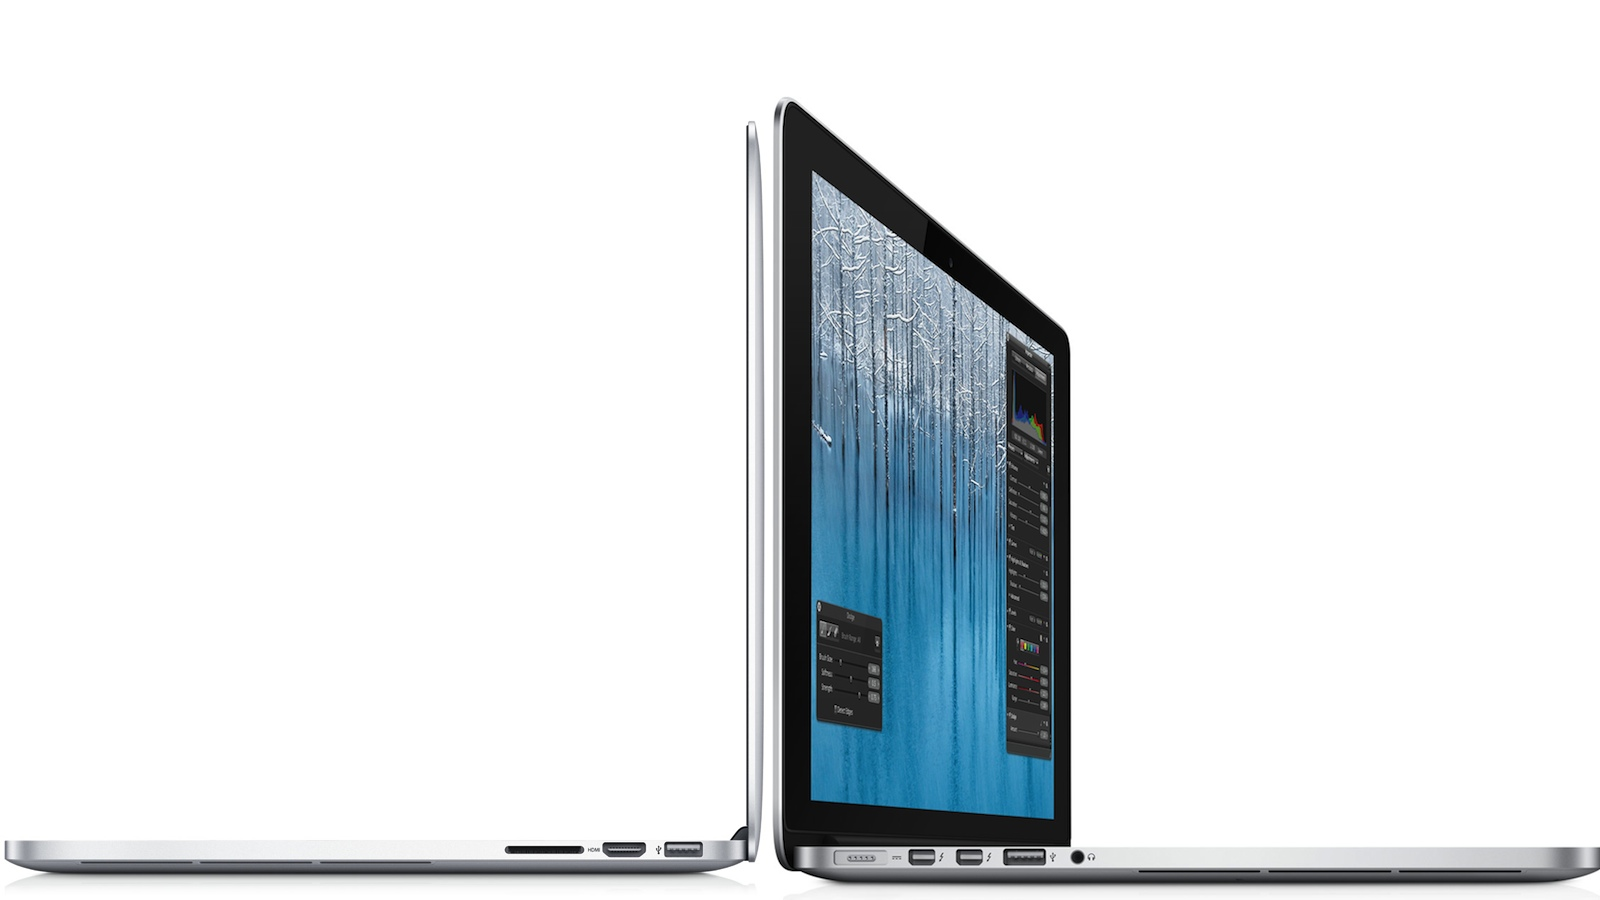 Click here to read The New MBP Retina Display Blows the Doors off Its Competition